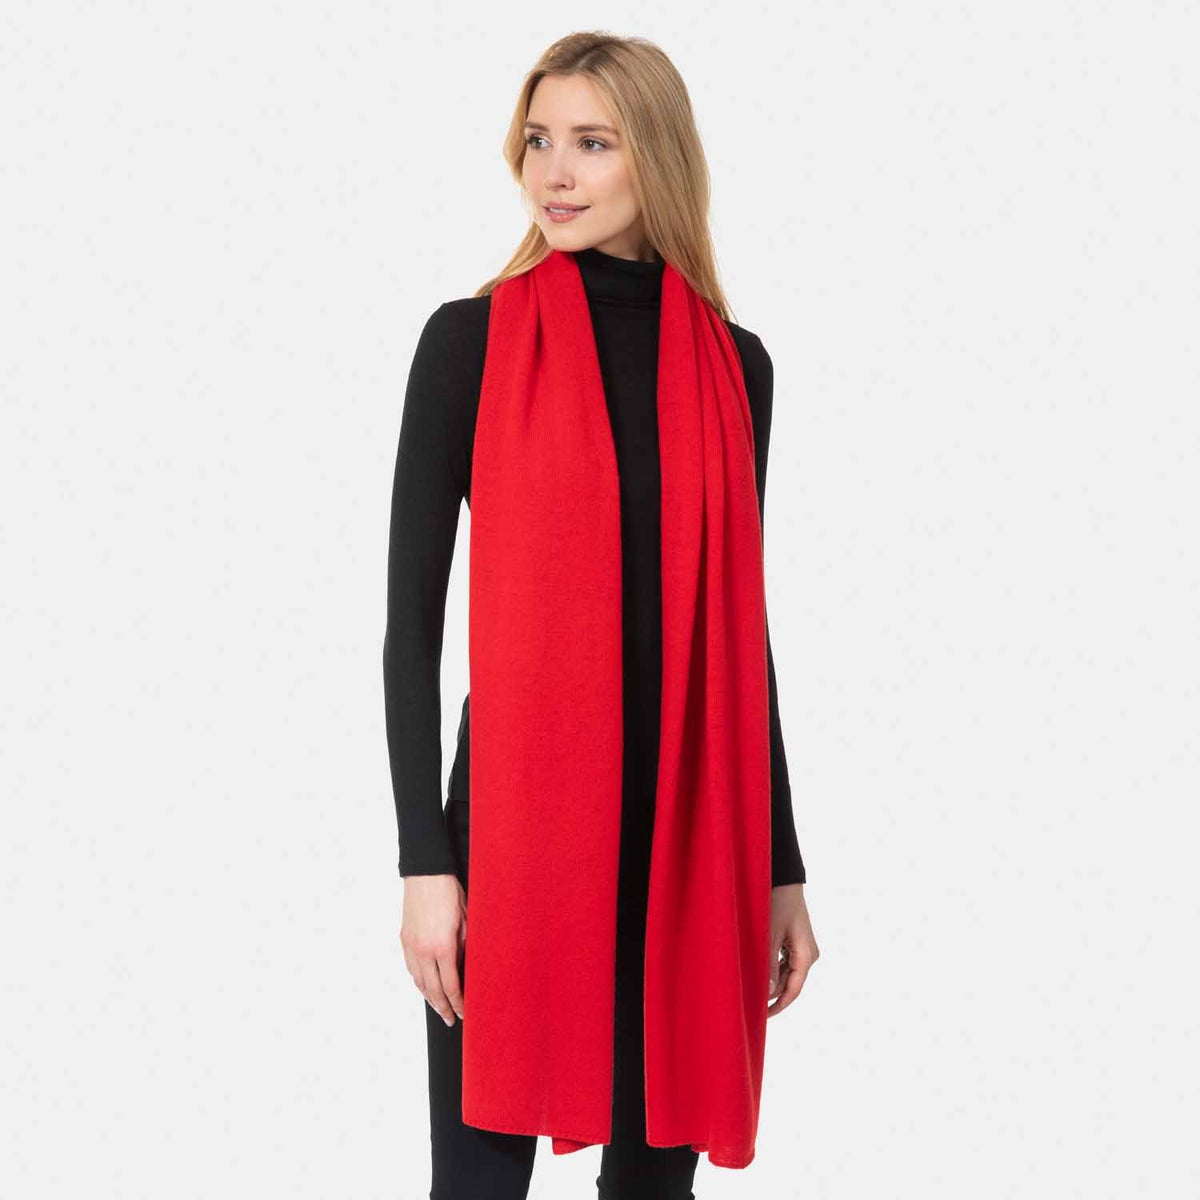 Cashmere Jersey Travel Wrap-Amicale Cashmere